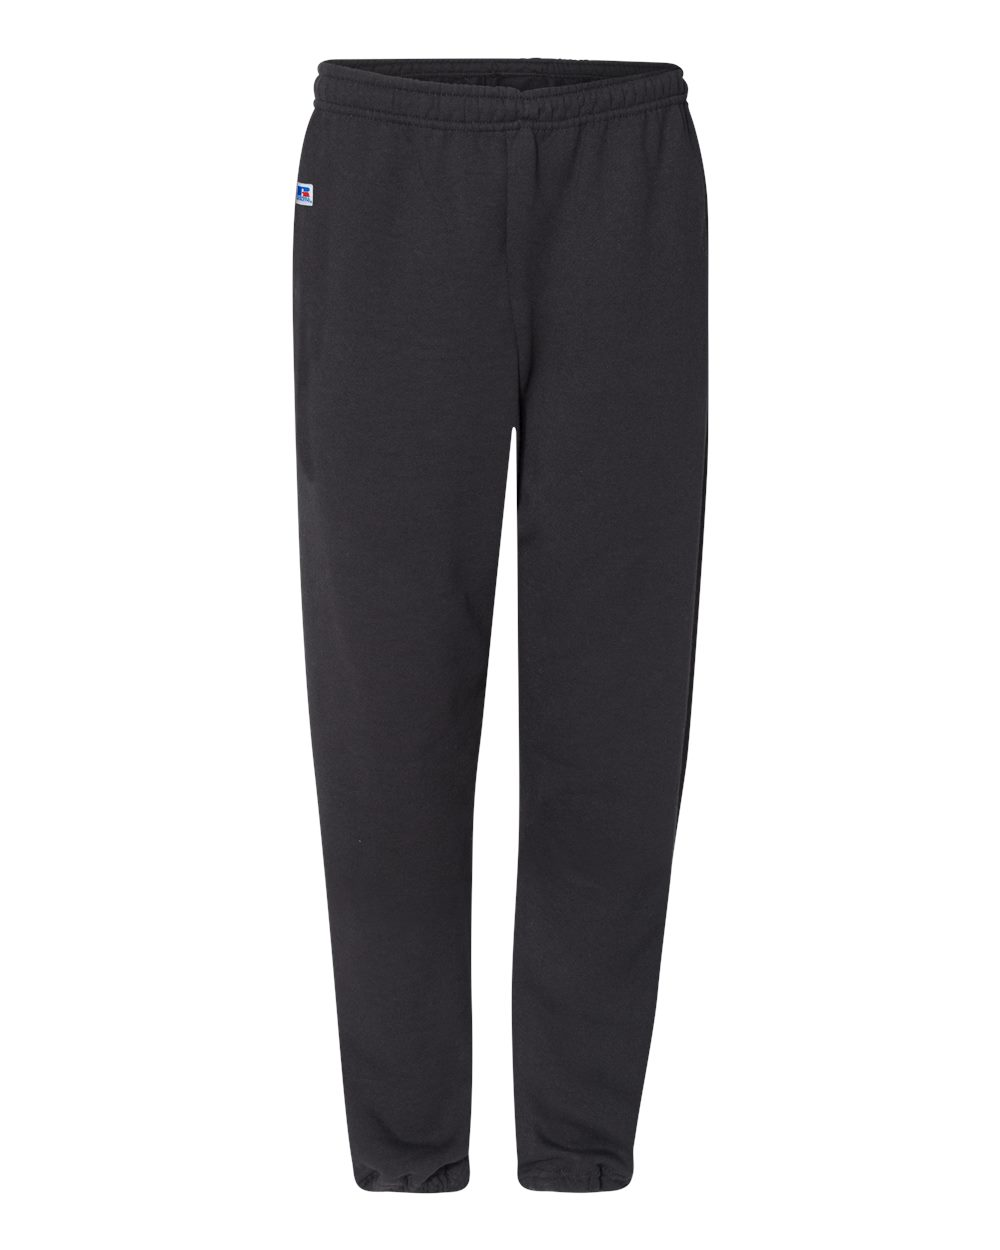 029HBM Russell Athletic Dri Power Closed Bottom Sweatpants with Pockets